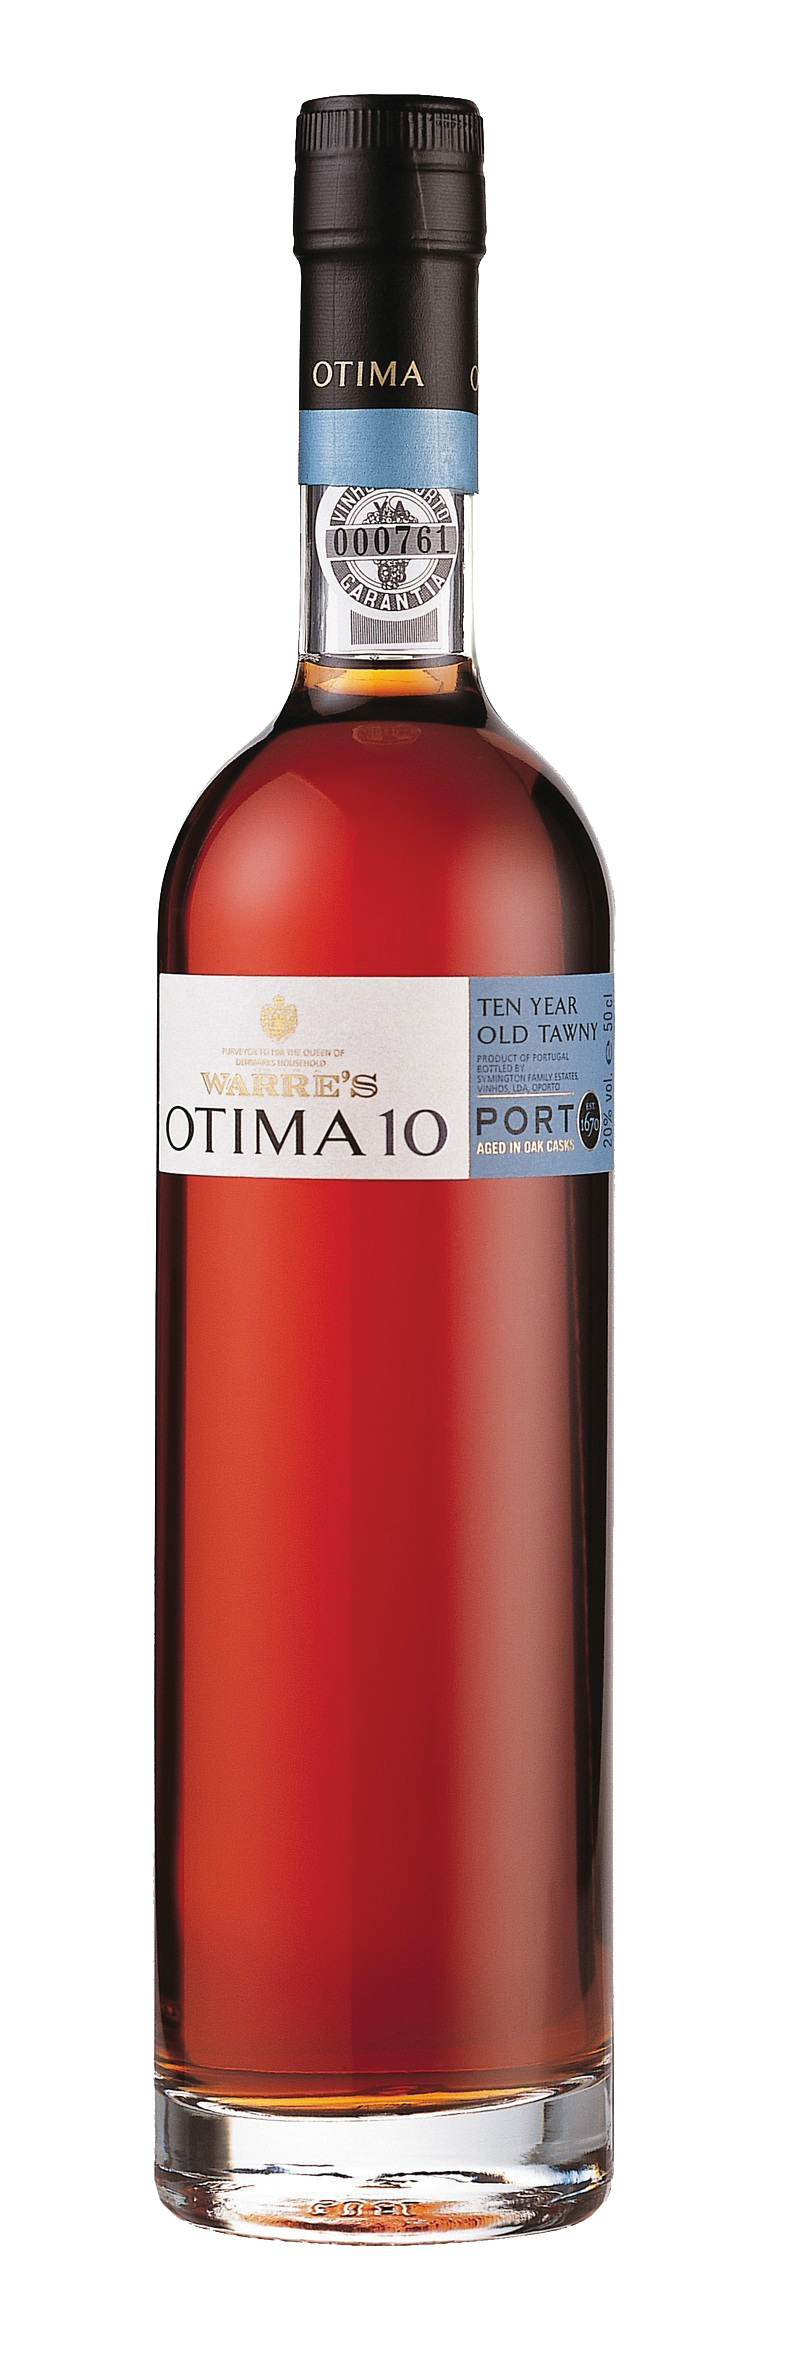 warre39s_otima_10-year-old_tawny_port.jpg